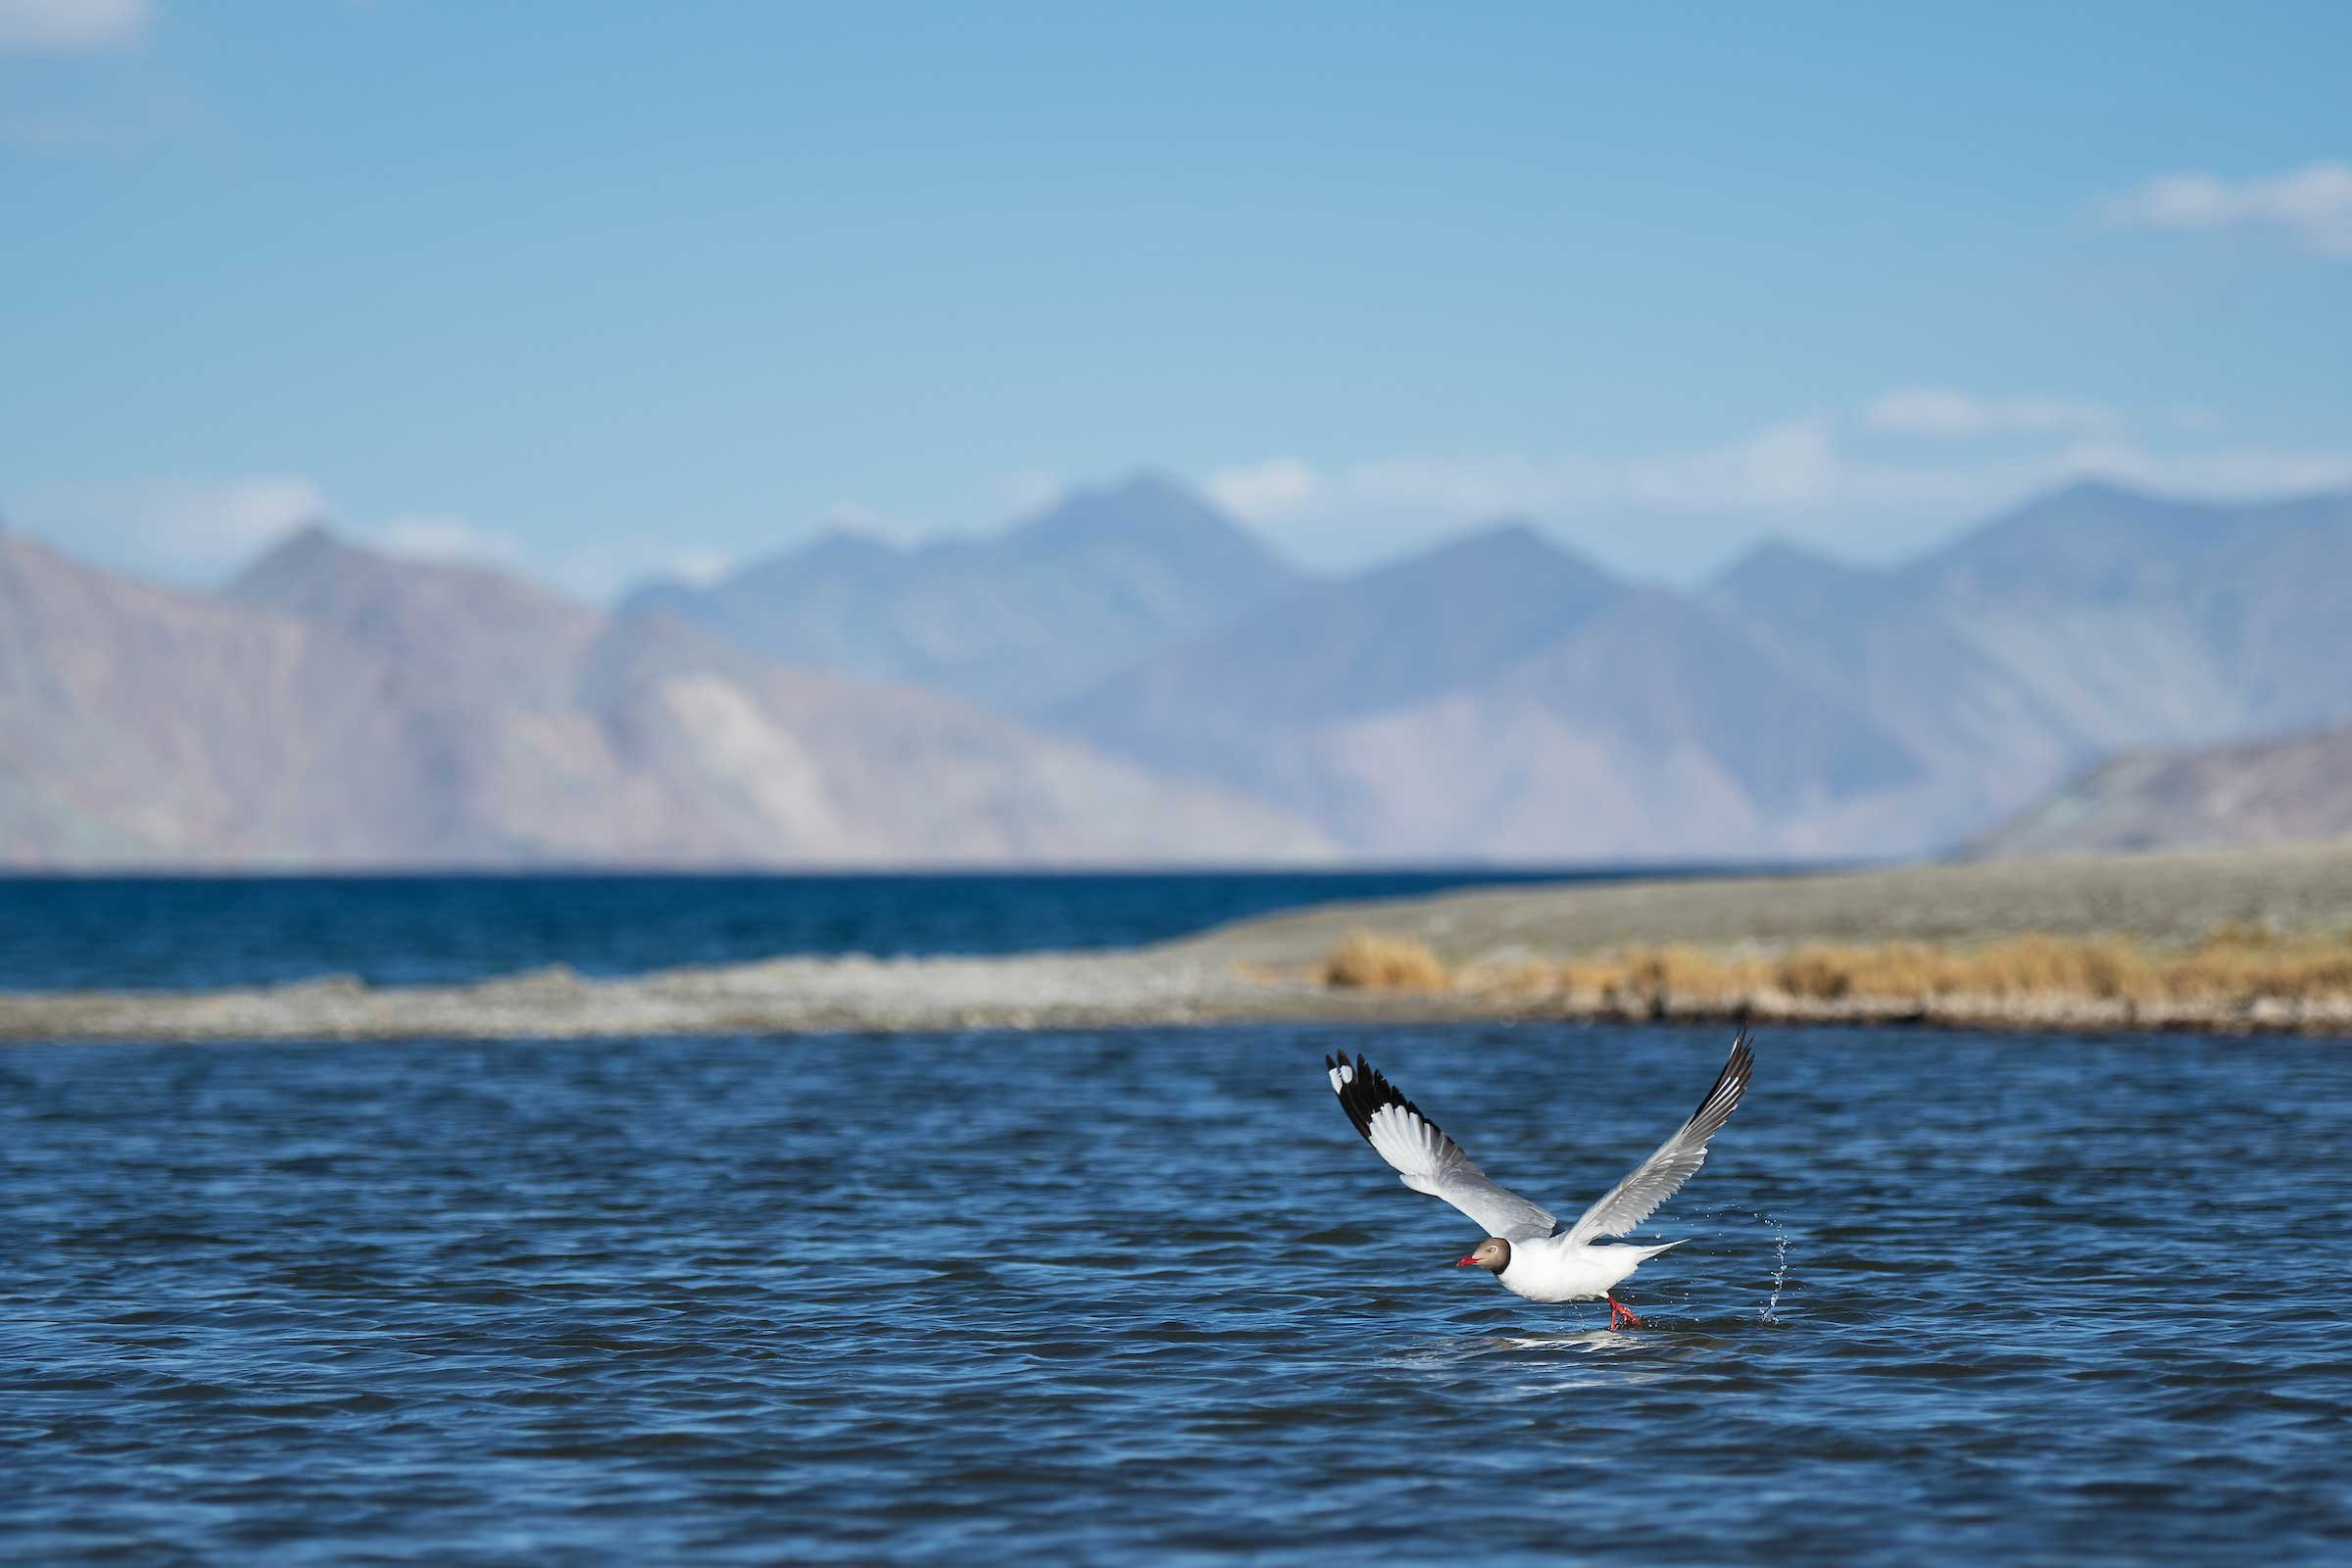 """A brown-headed gull flies low over the Pangong lake in Ladakh. Some populations of the brown-headed gull breed in Ladakh during summer before flying southwards in winter. """"They are quite common here and can be seen frequently near the lakeshore. Though they are not addicted to junk food like their counterparts in other parts of the country, they do accept food from tourists on occasion,"""" said Shreeram MV. Photo: Shreeram MV"""